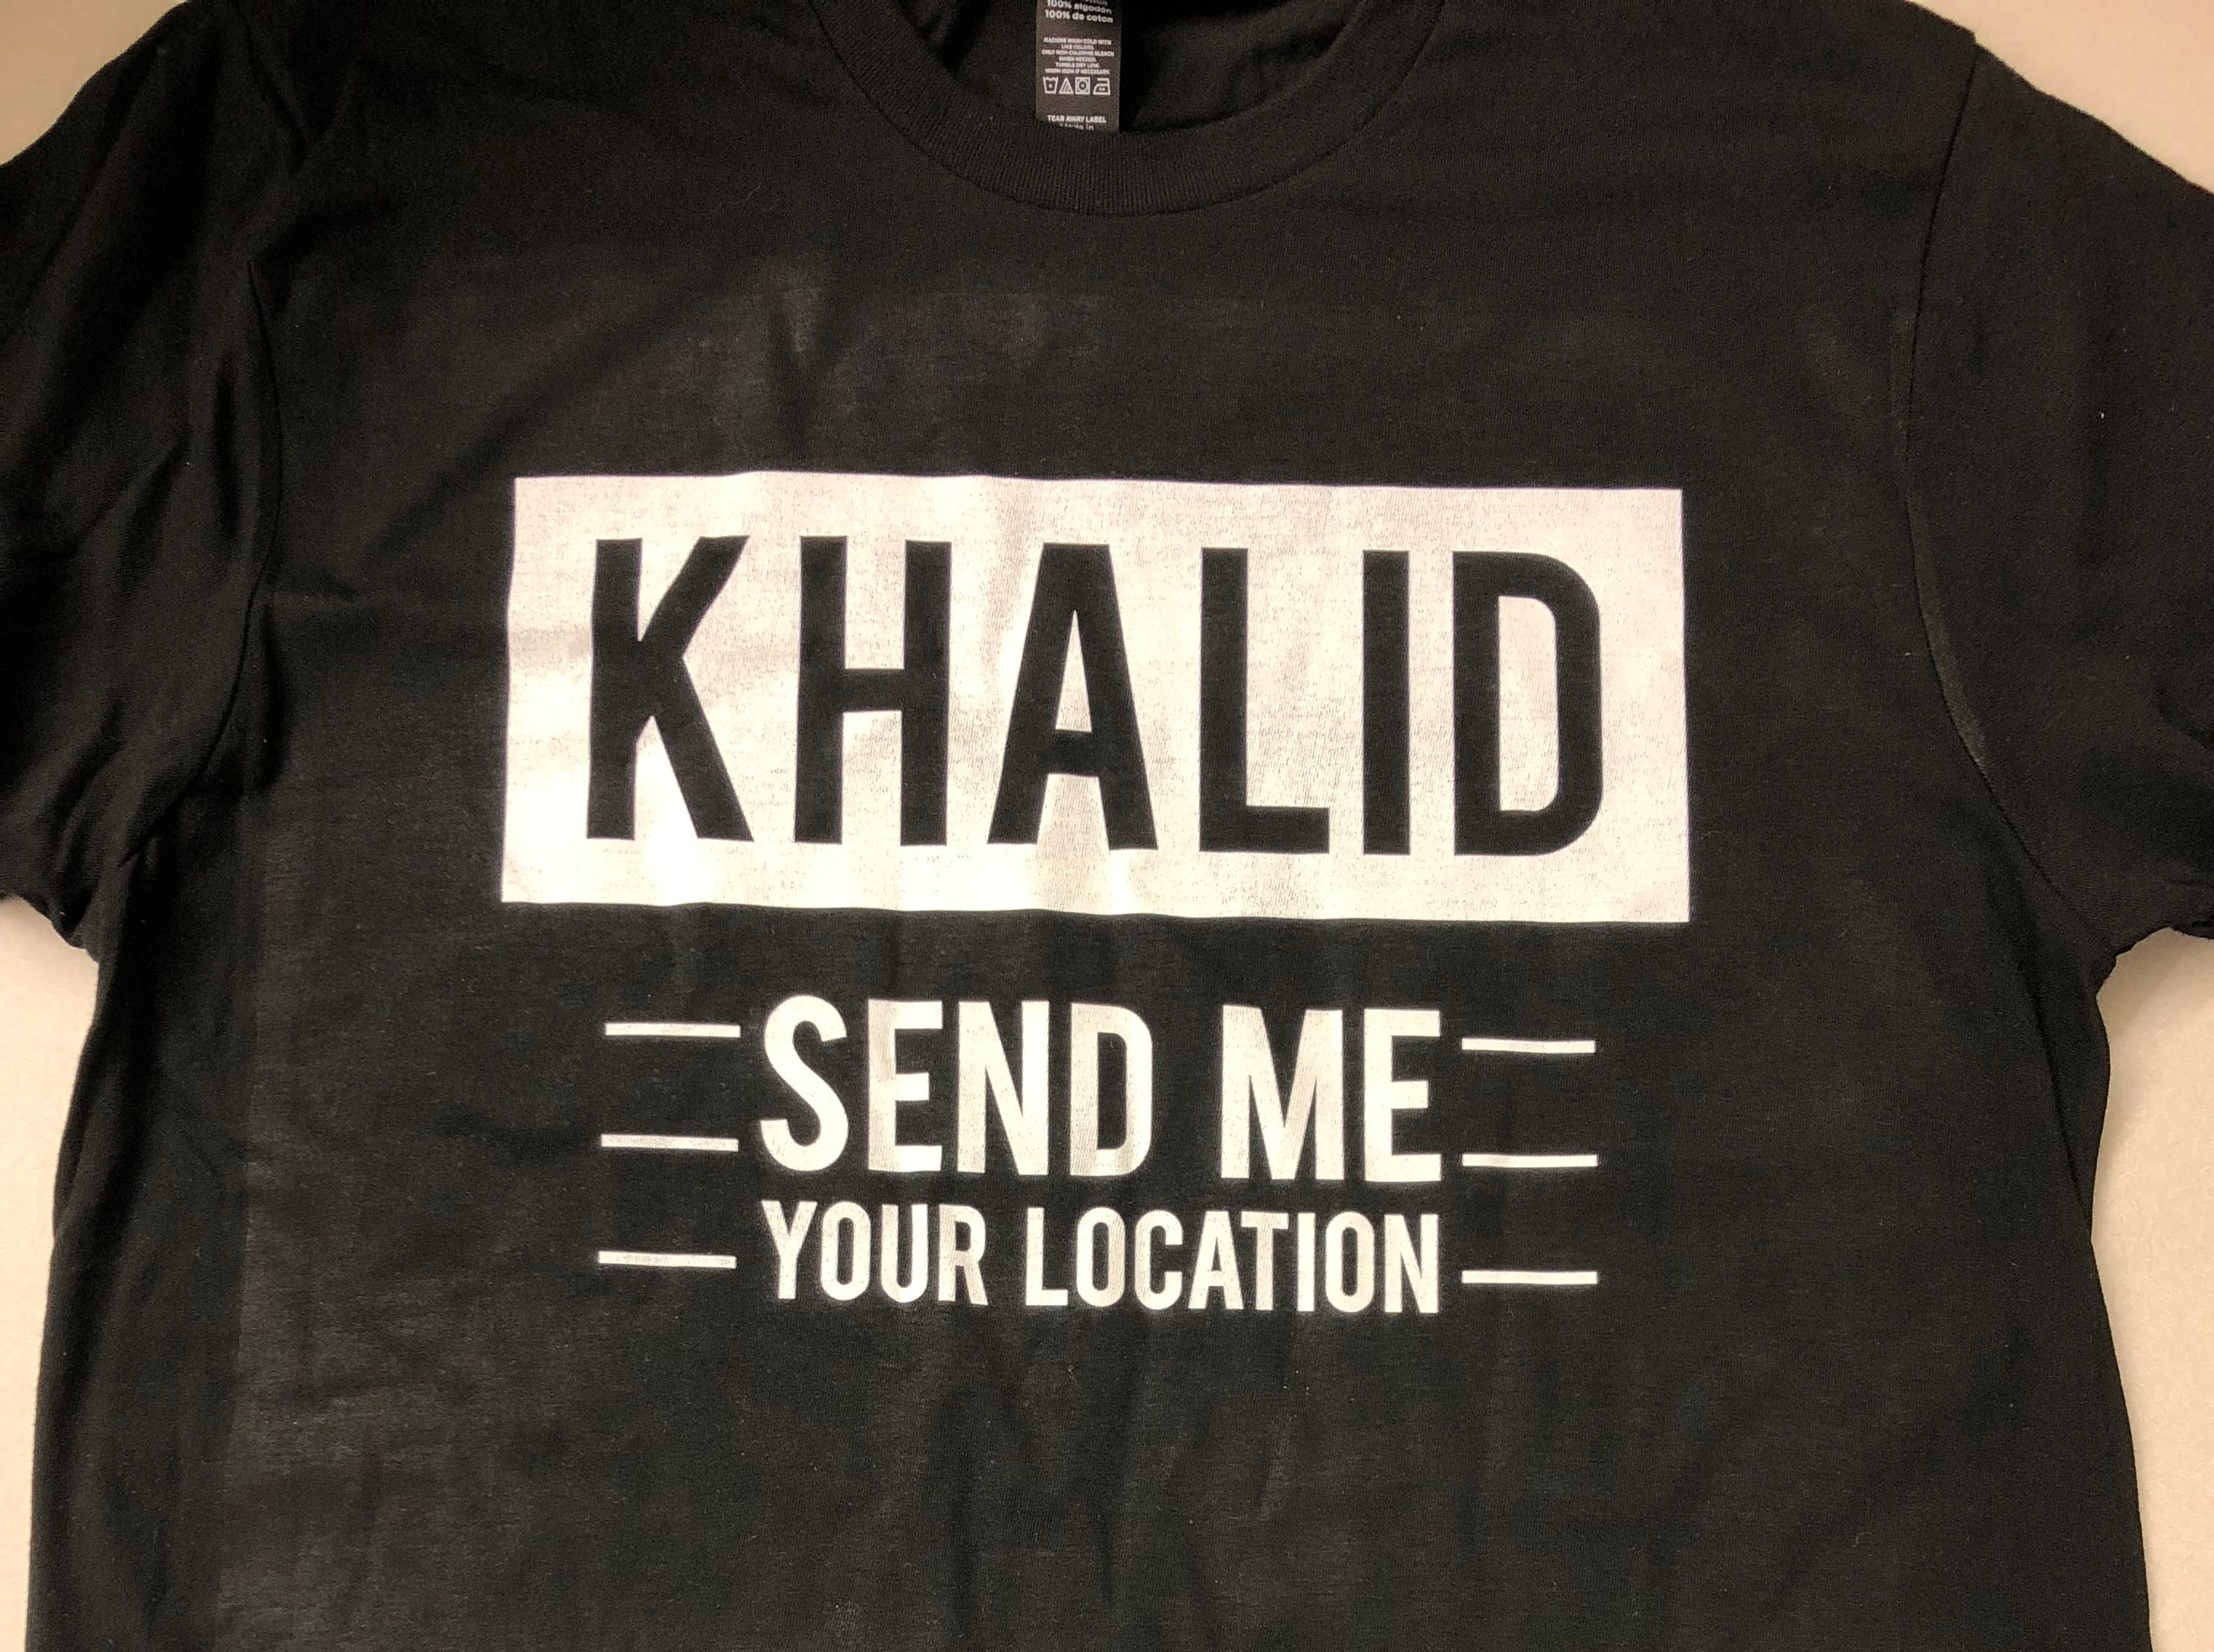 Proper Printshop, at 800 Montana, will be selling Khalid shirts ahead of this weekend's concerts.